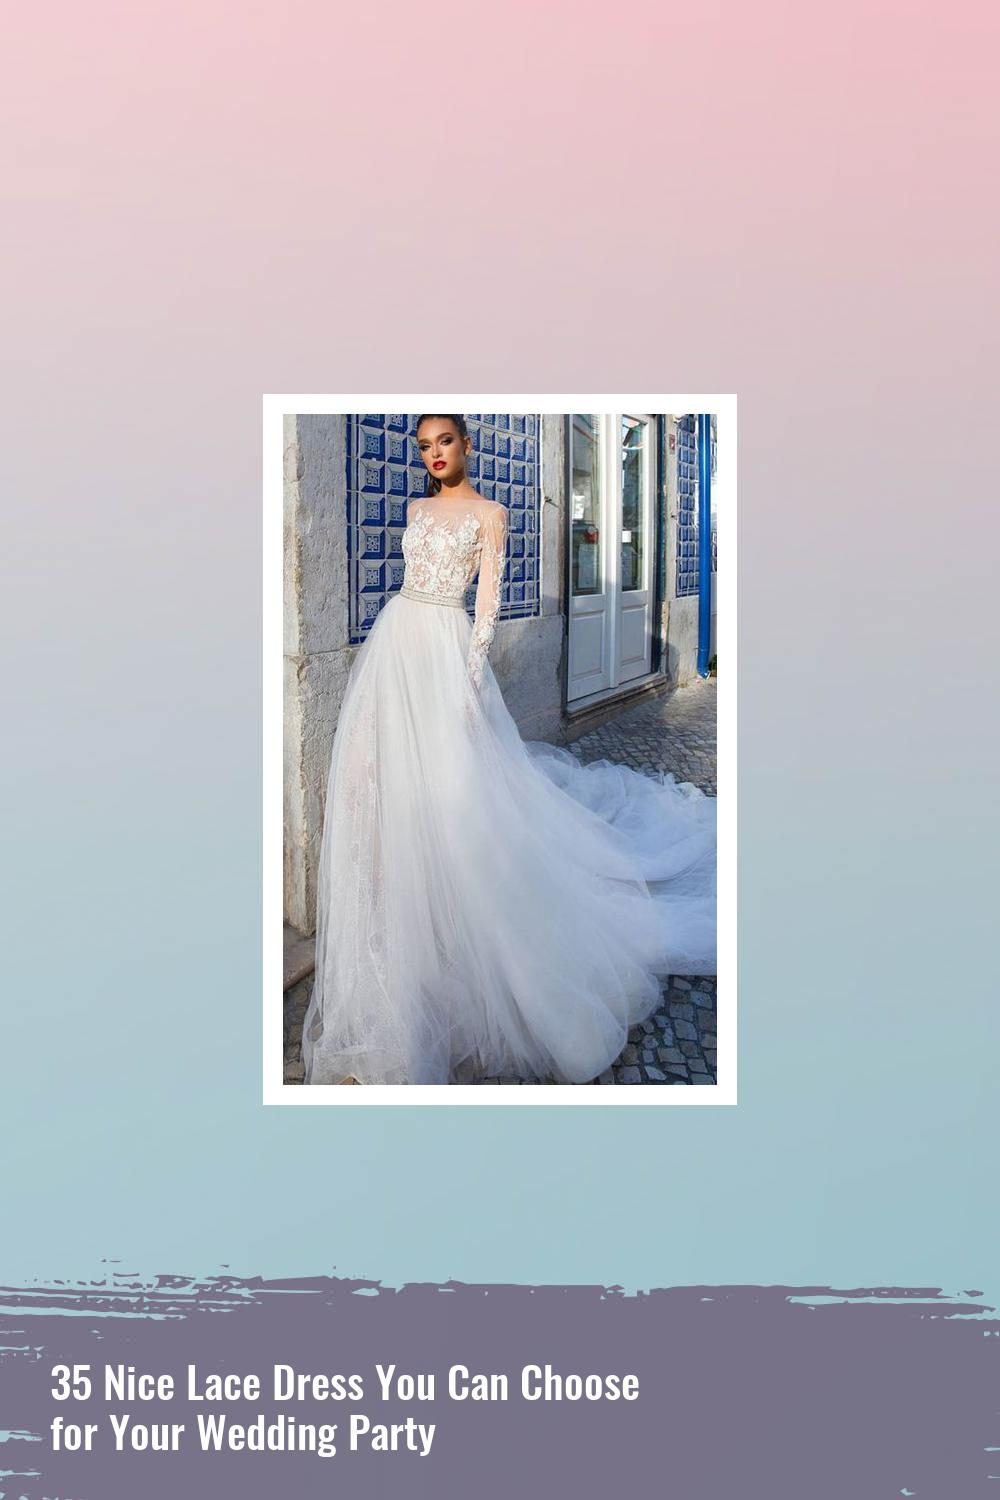 35 Nice Lace Dress You Can Choose for Your Wedding Party 22